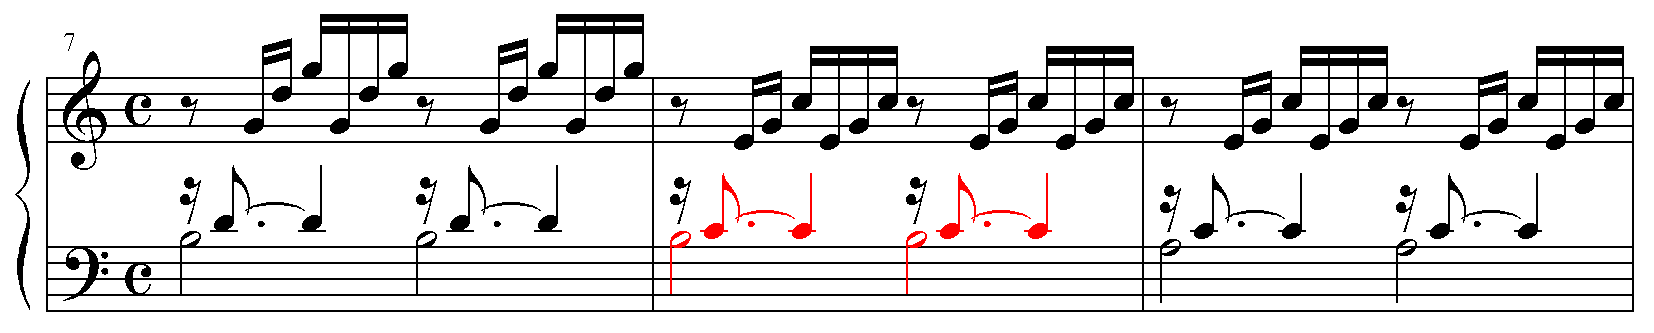 Bach minor second smaller